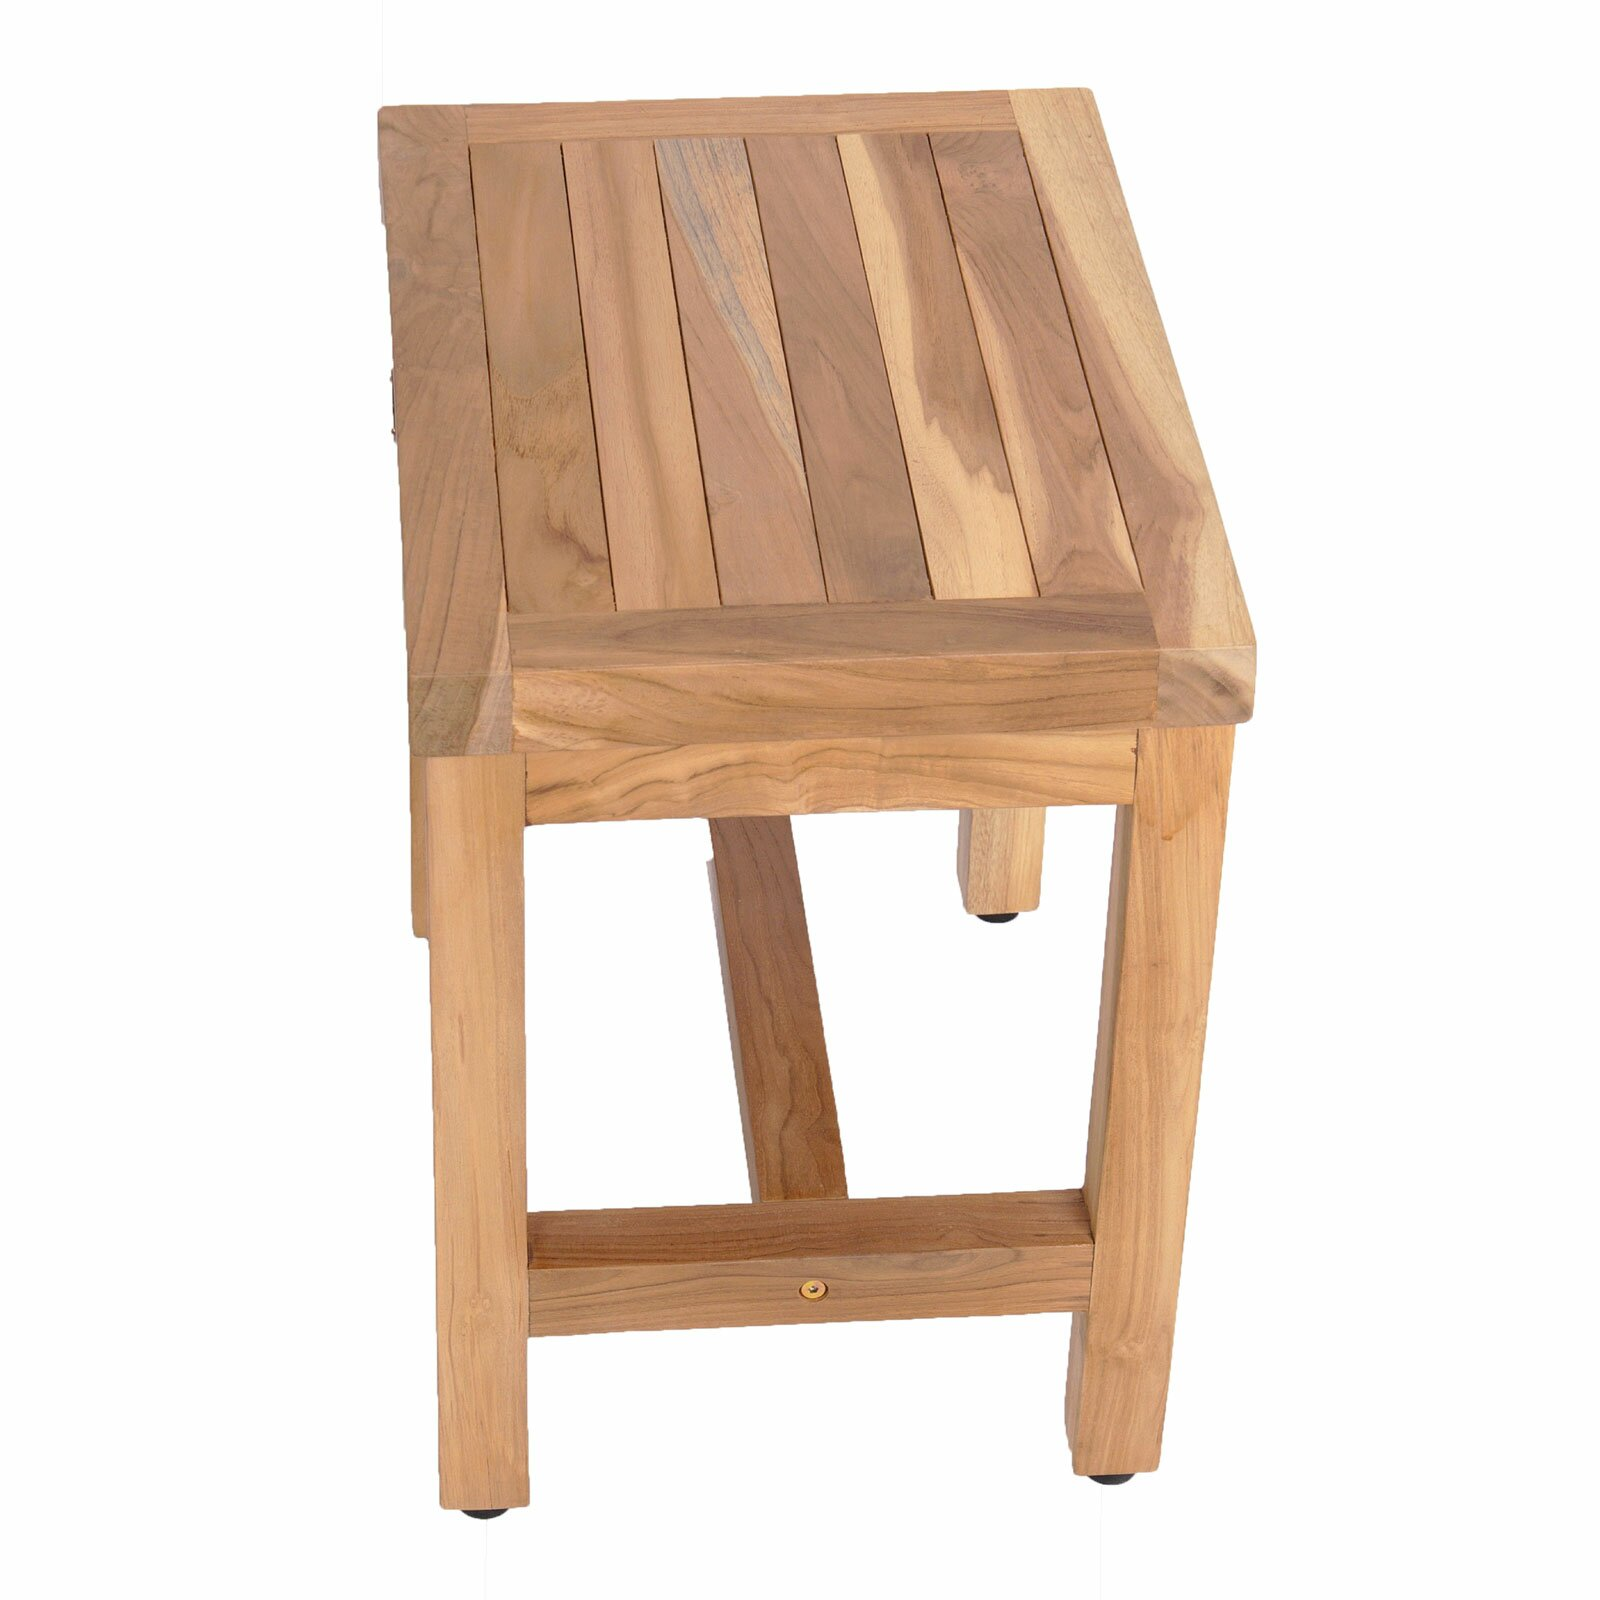 previous image next image teak shower bench